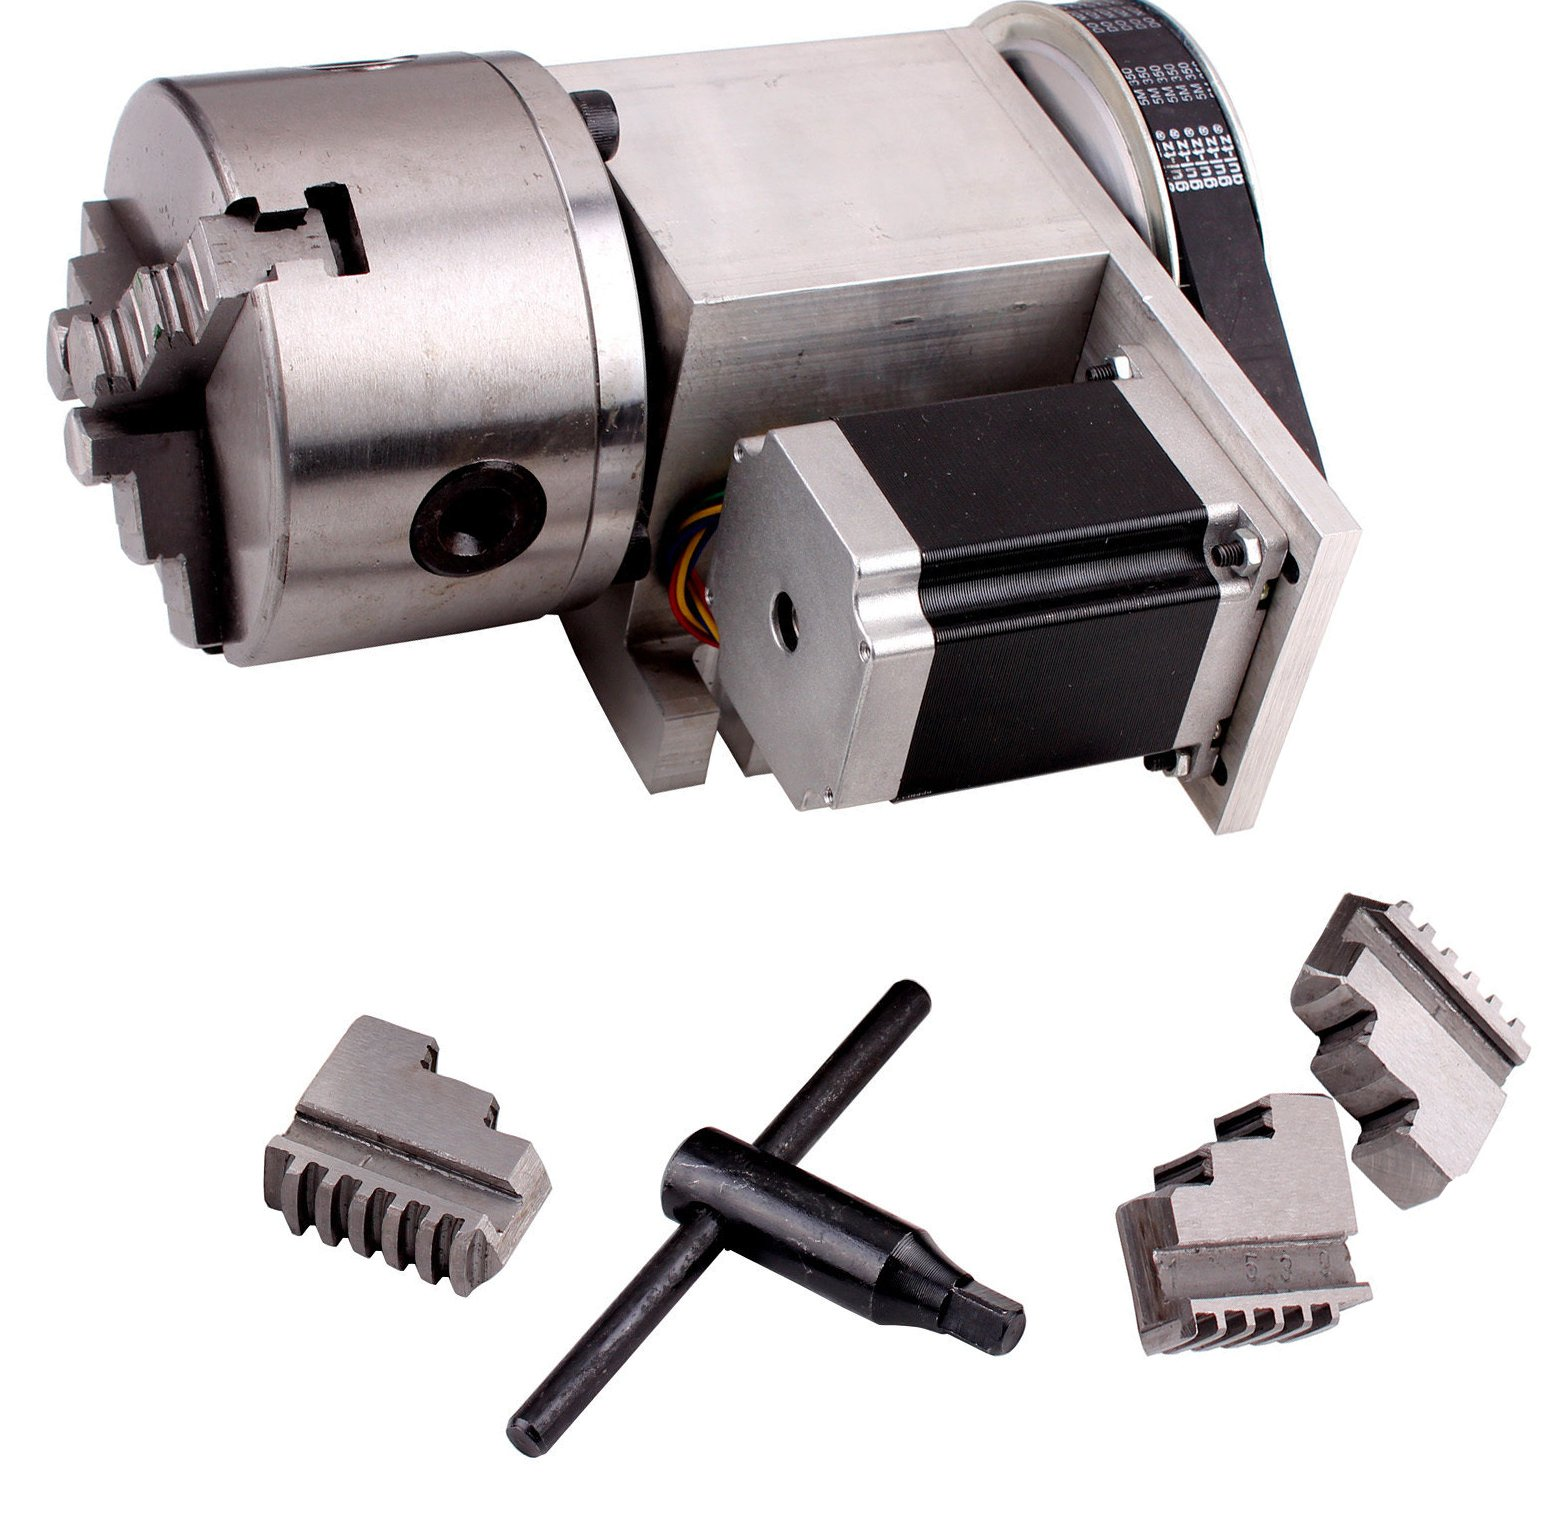 CNC Router Rotational Axis, 4th Axis, A axis 100mm Three 3-Jaw Chuck 6:1 for CNC Engraving Machine